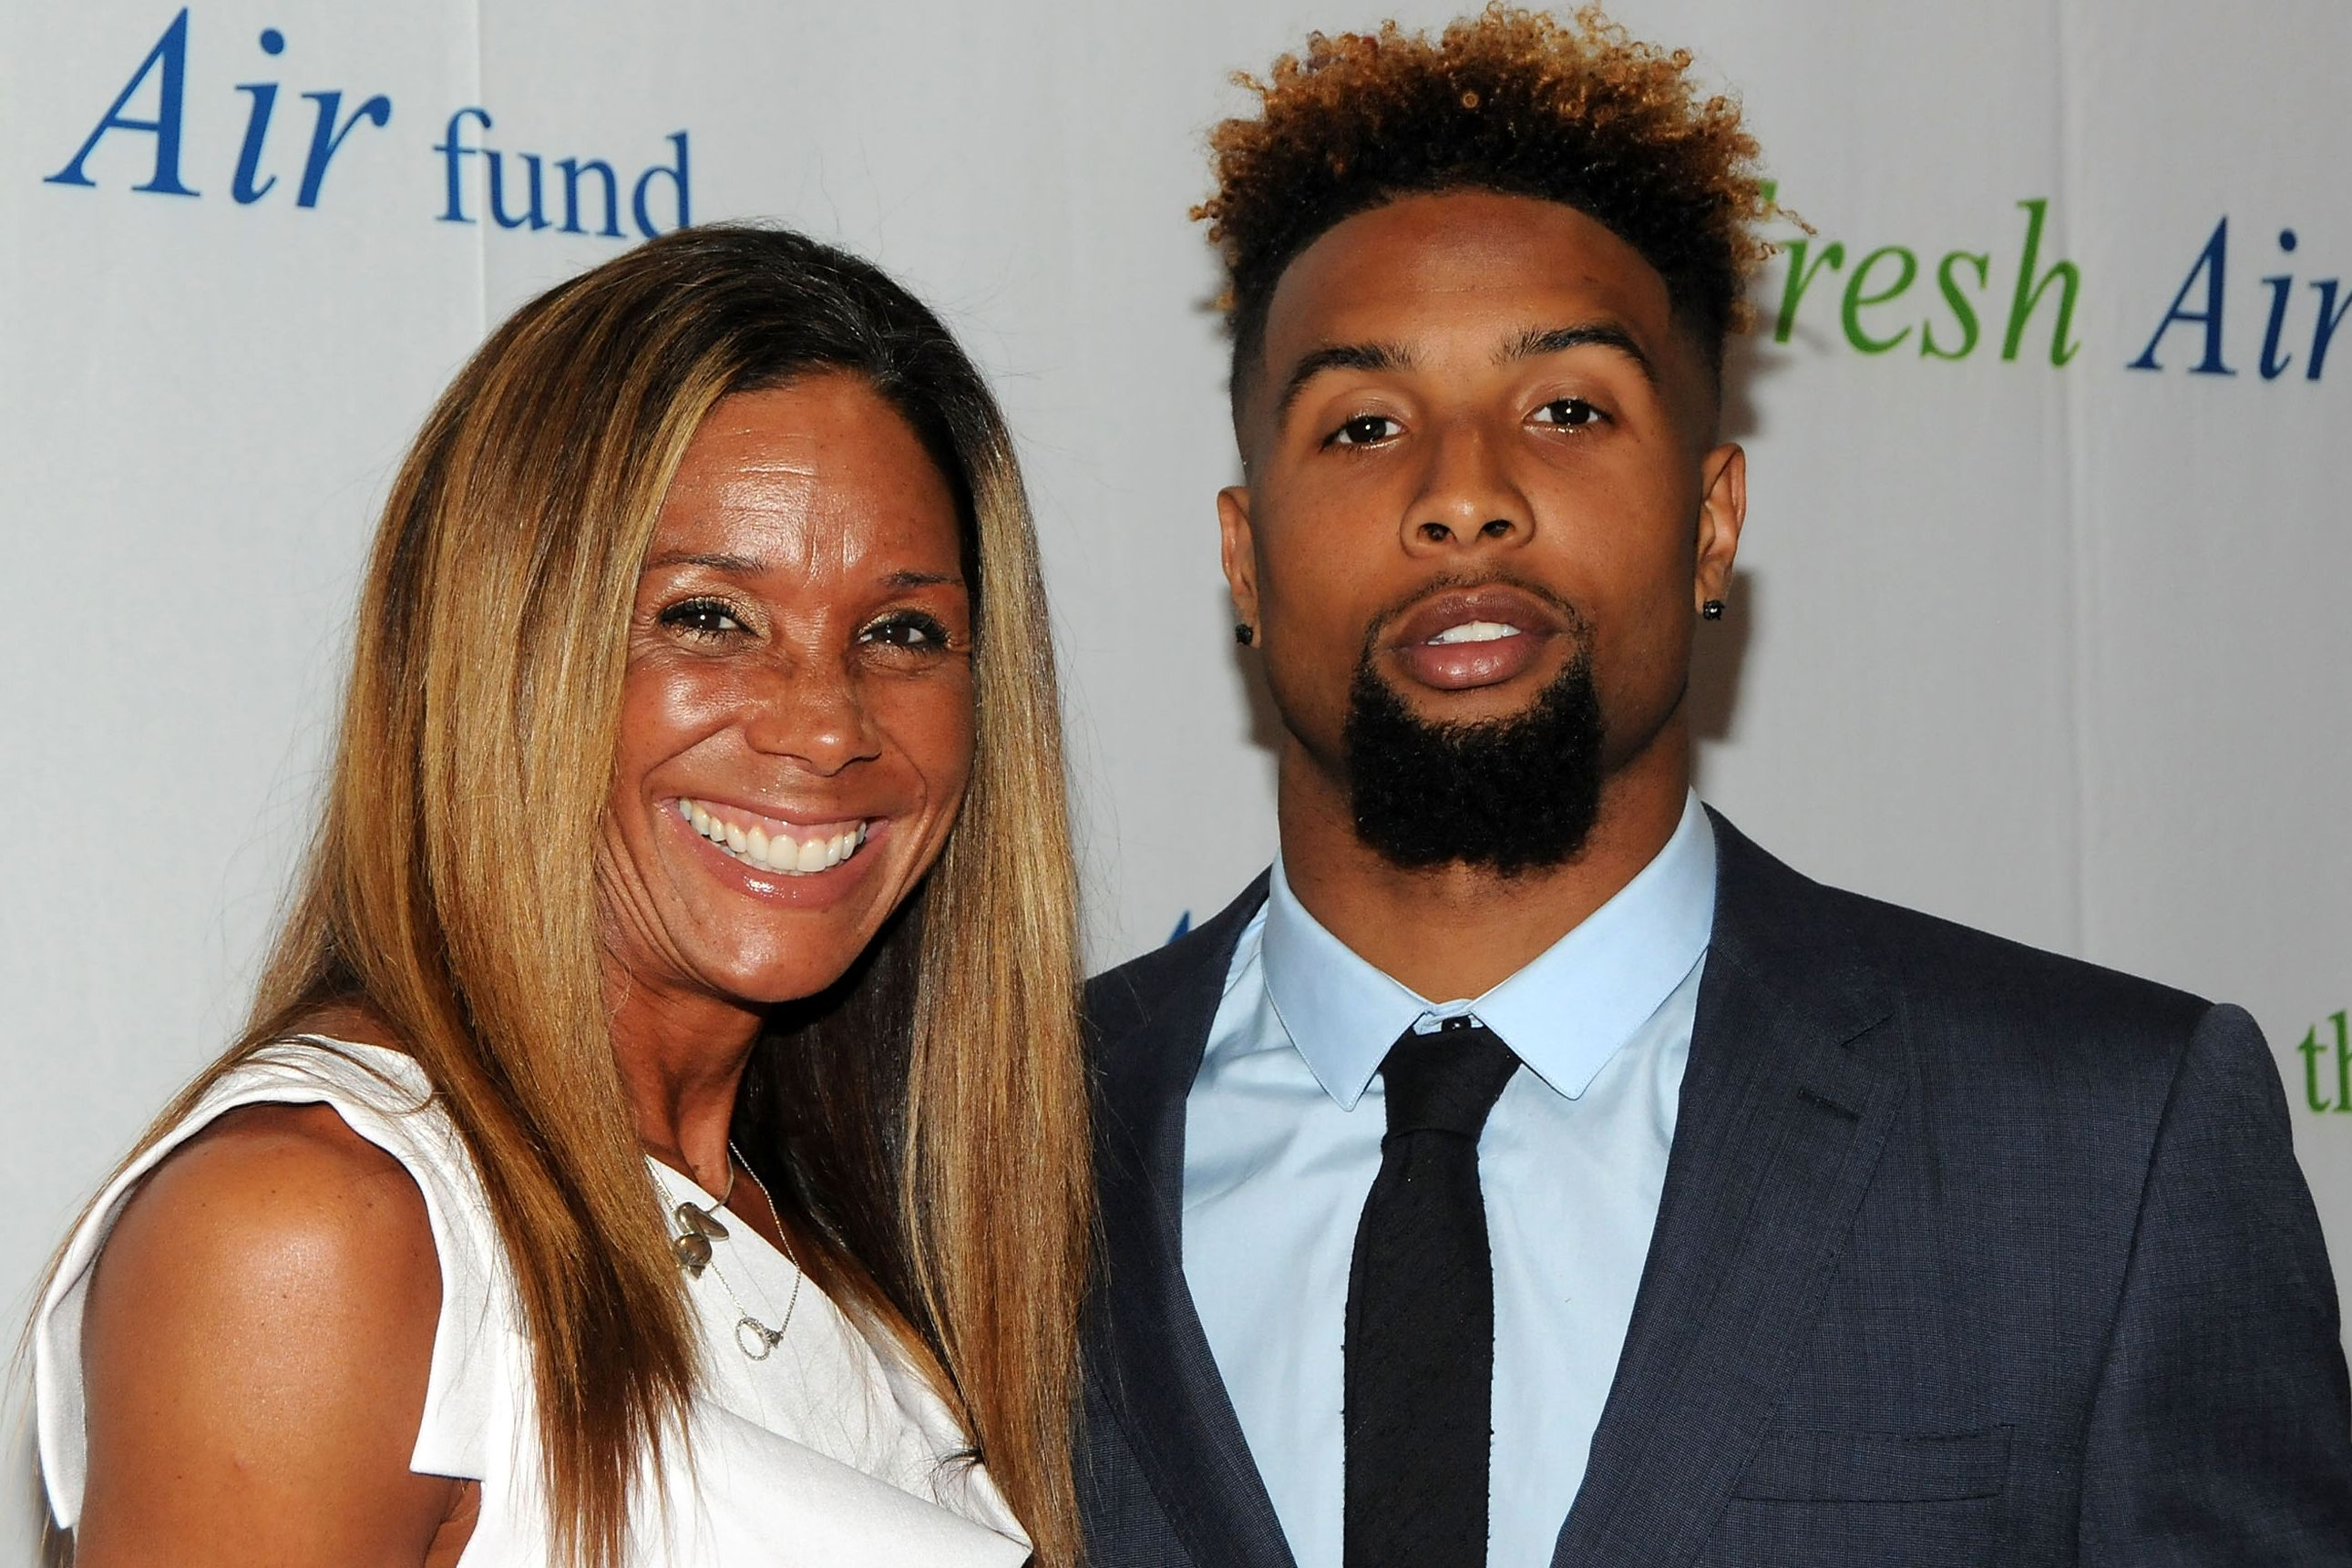 NY Giants wide receiver, Odell Beckman, Jr. with his